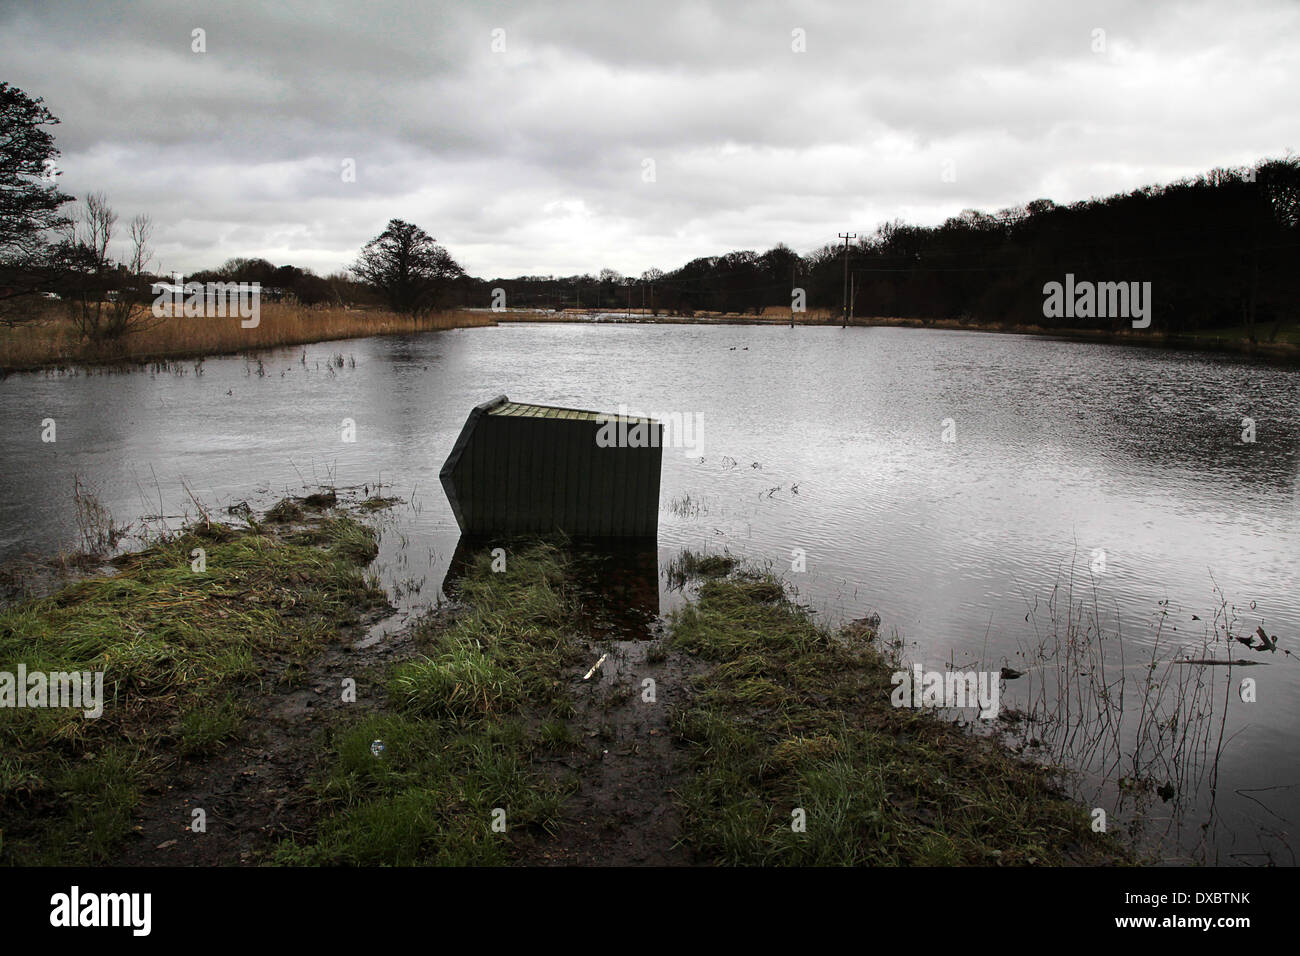 River Meon flooding in Titchfield, Hampshire, England - February 2014; toppled garden shed in flooded field. Stock Photo